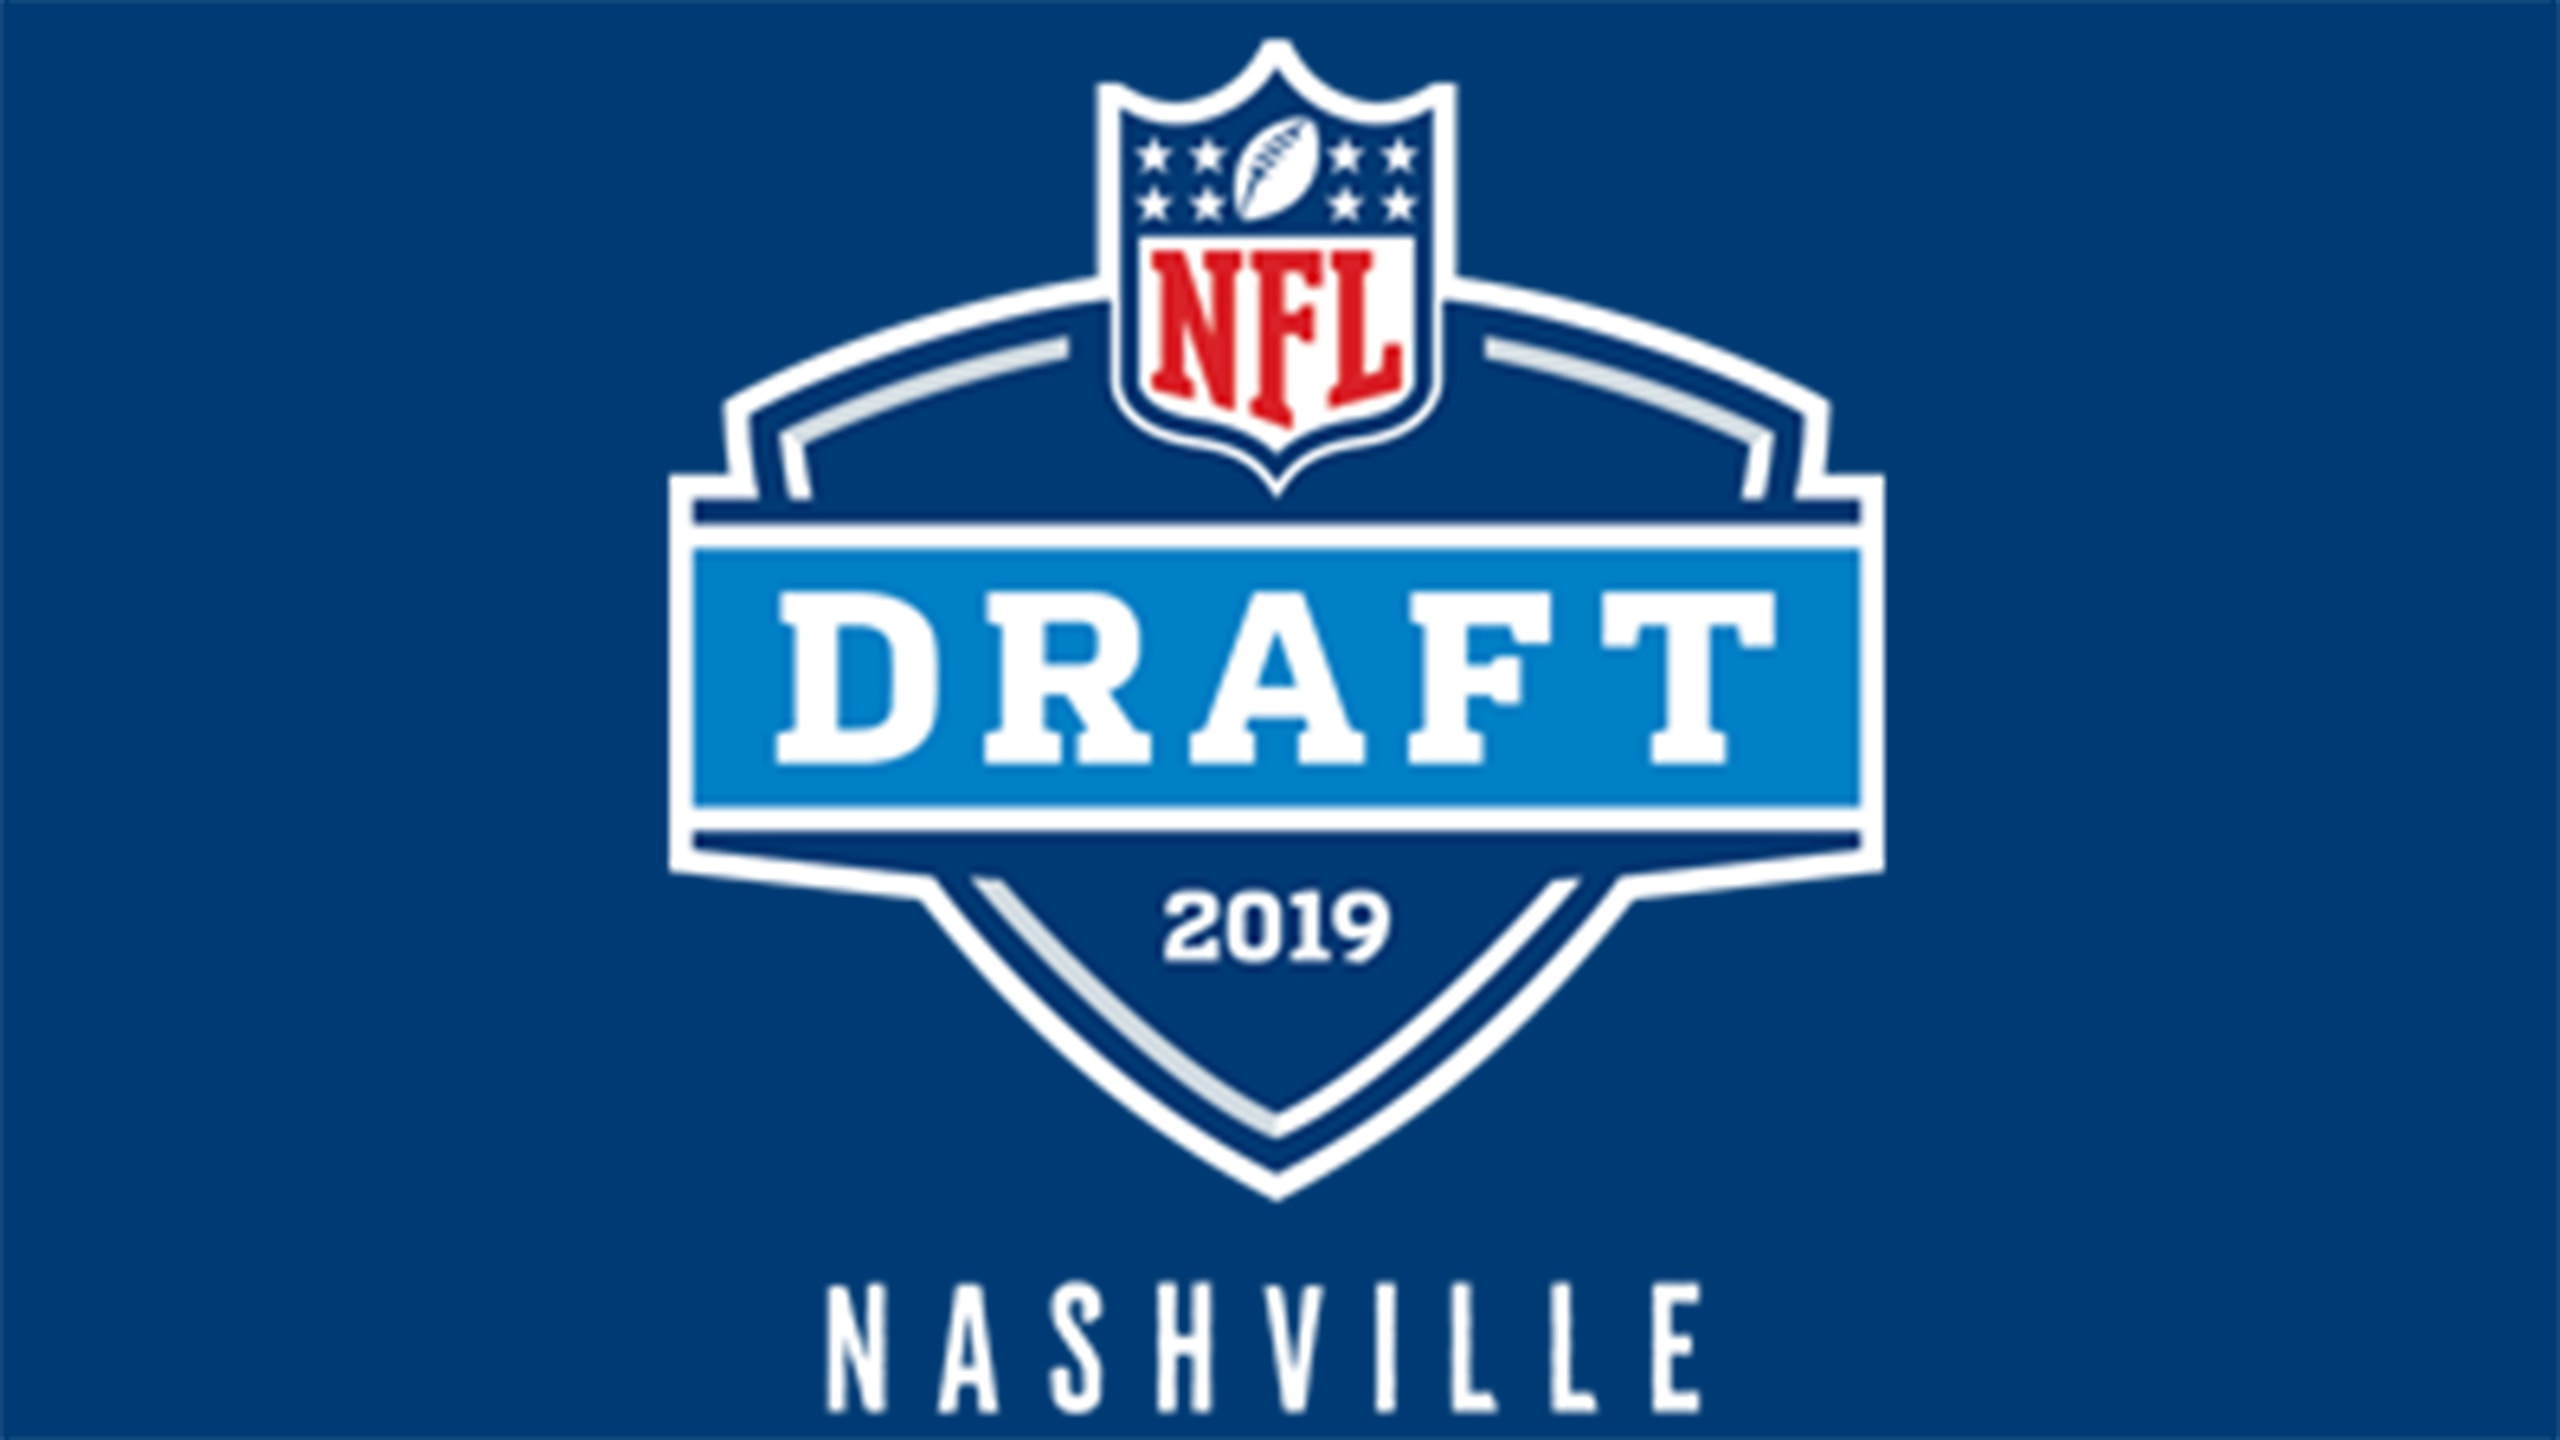 Interested in Volunteering at the NFL Draft?